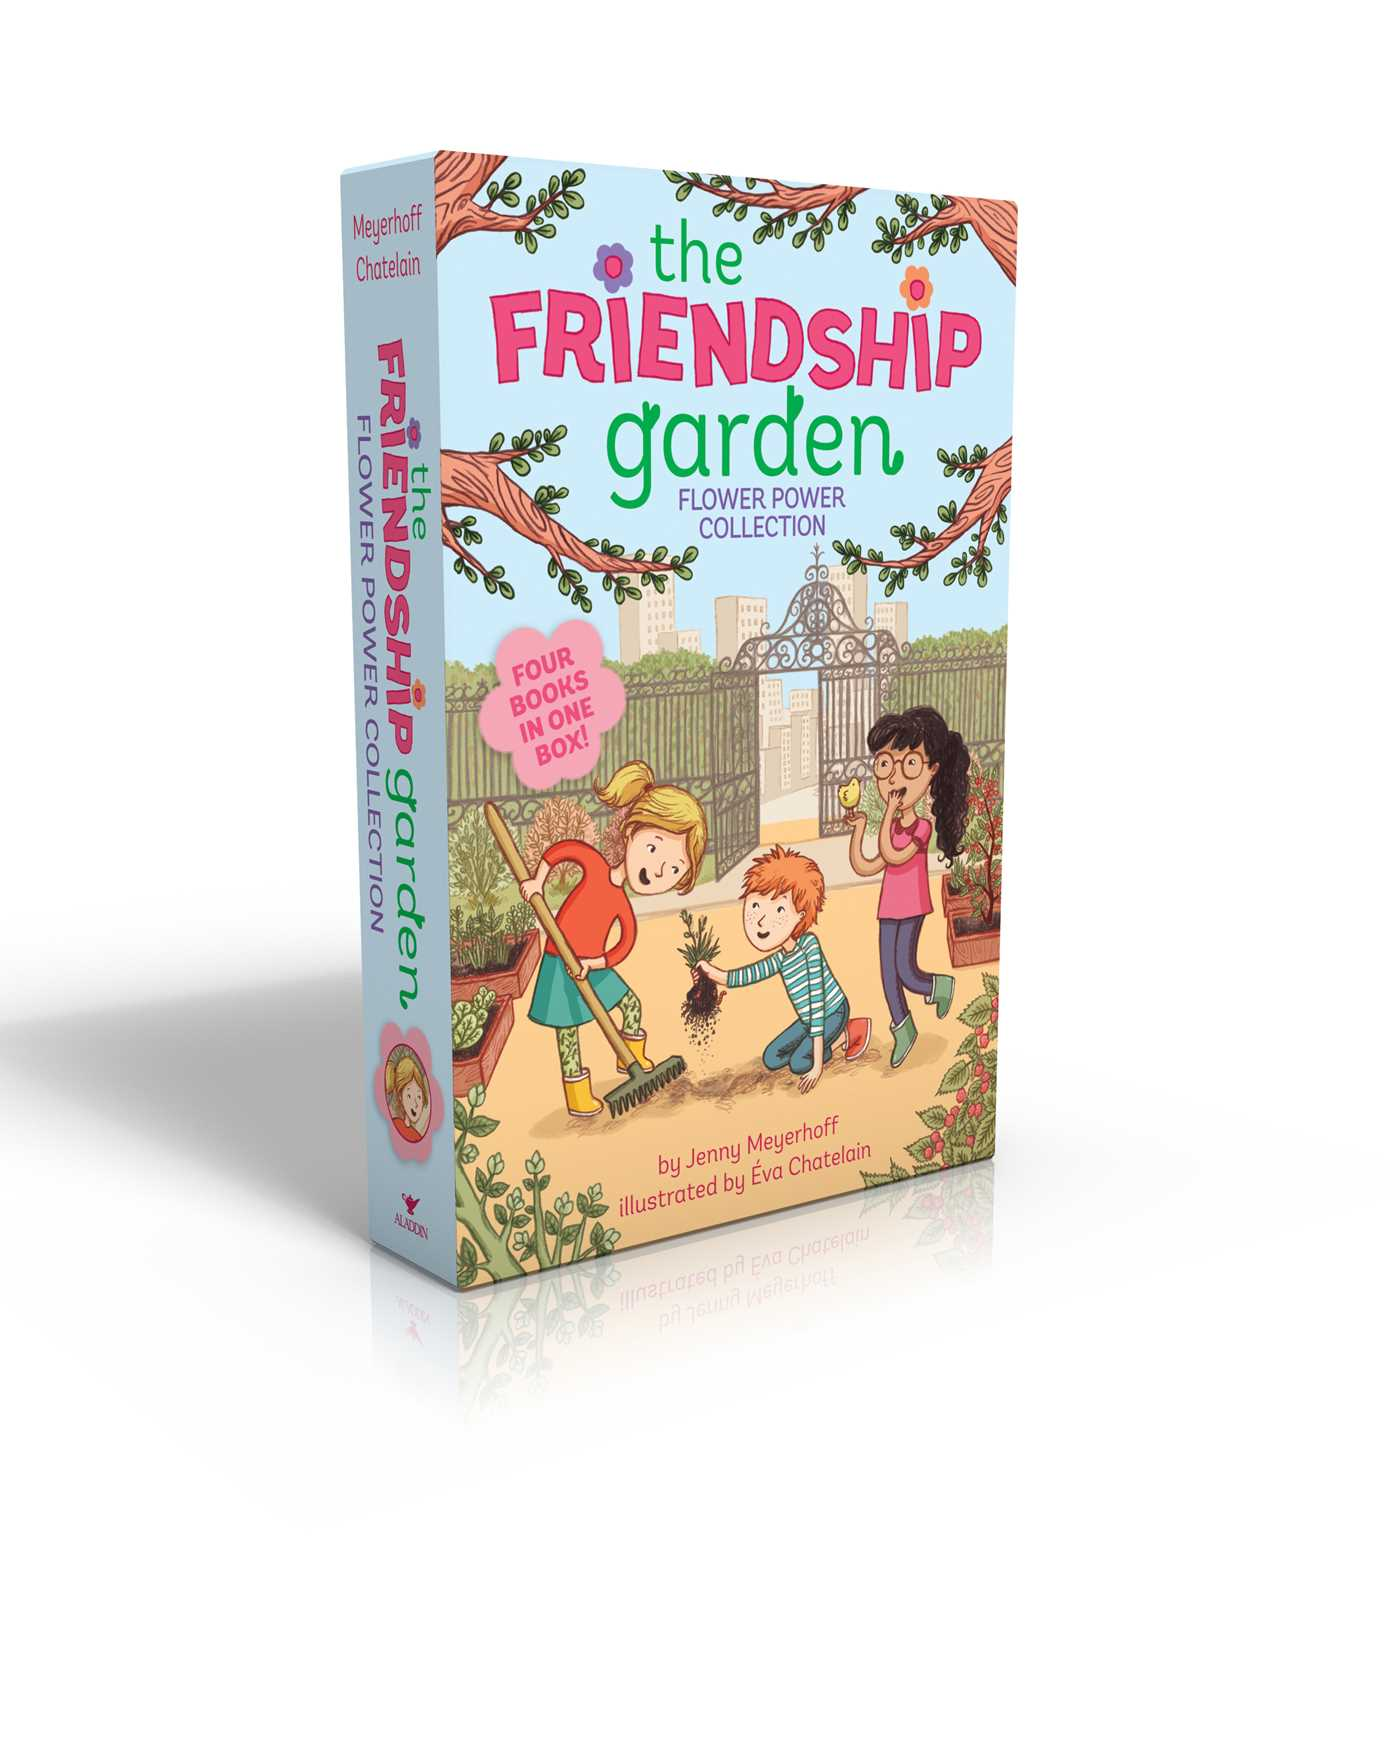 The friendship garden flower power collection books 1 4 9781481469258 hr